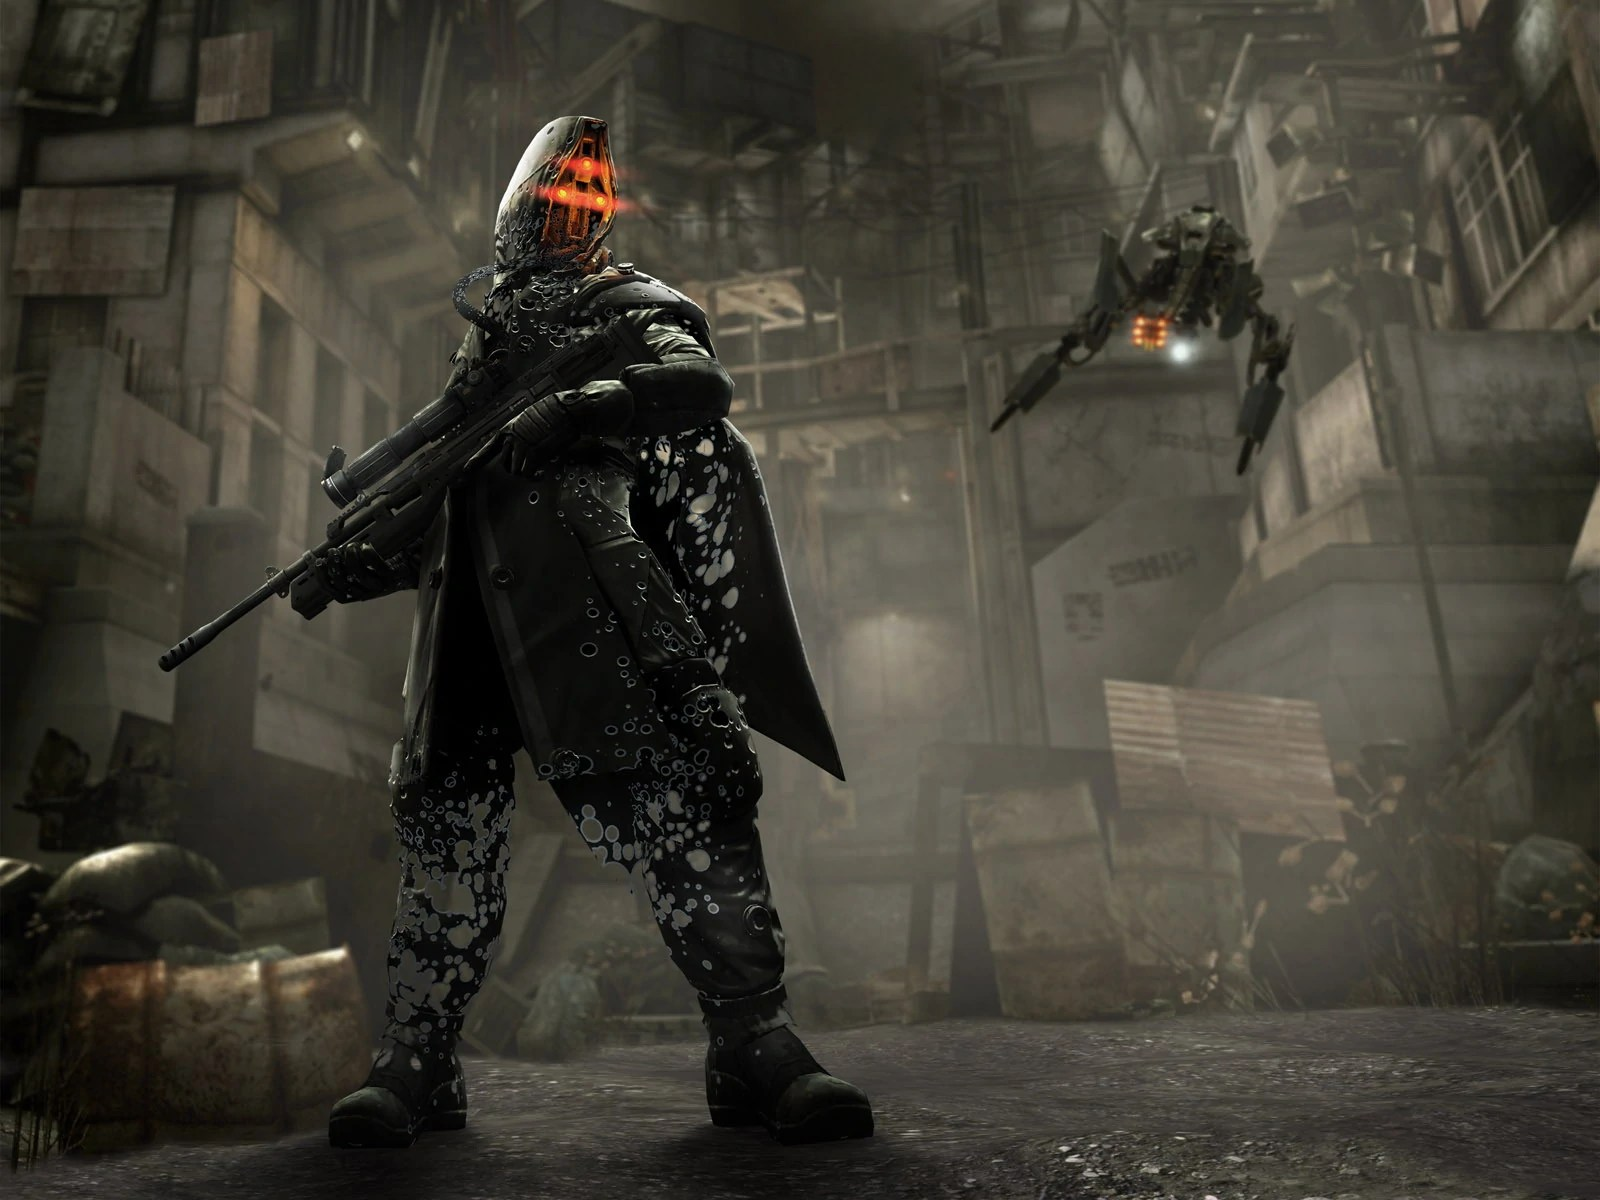 Fall Masquerade Fantasy Art Wallpapers Image Picture Halo Reach Helghast Sniper High Definition